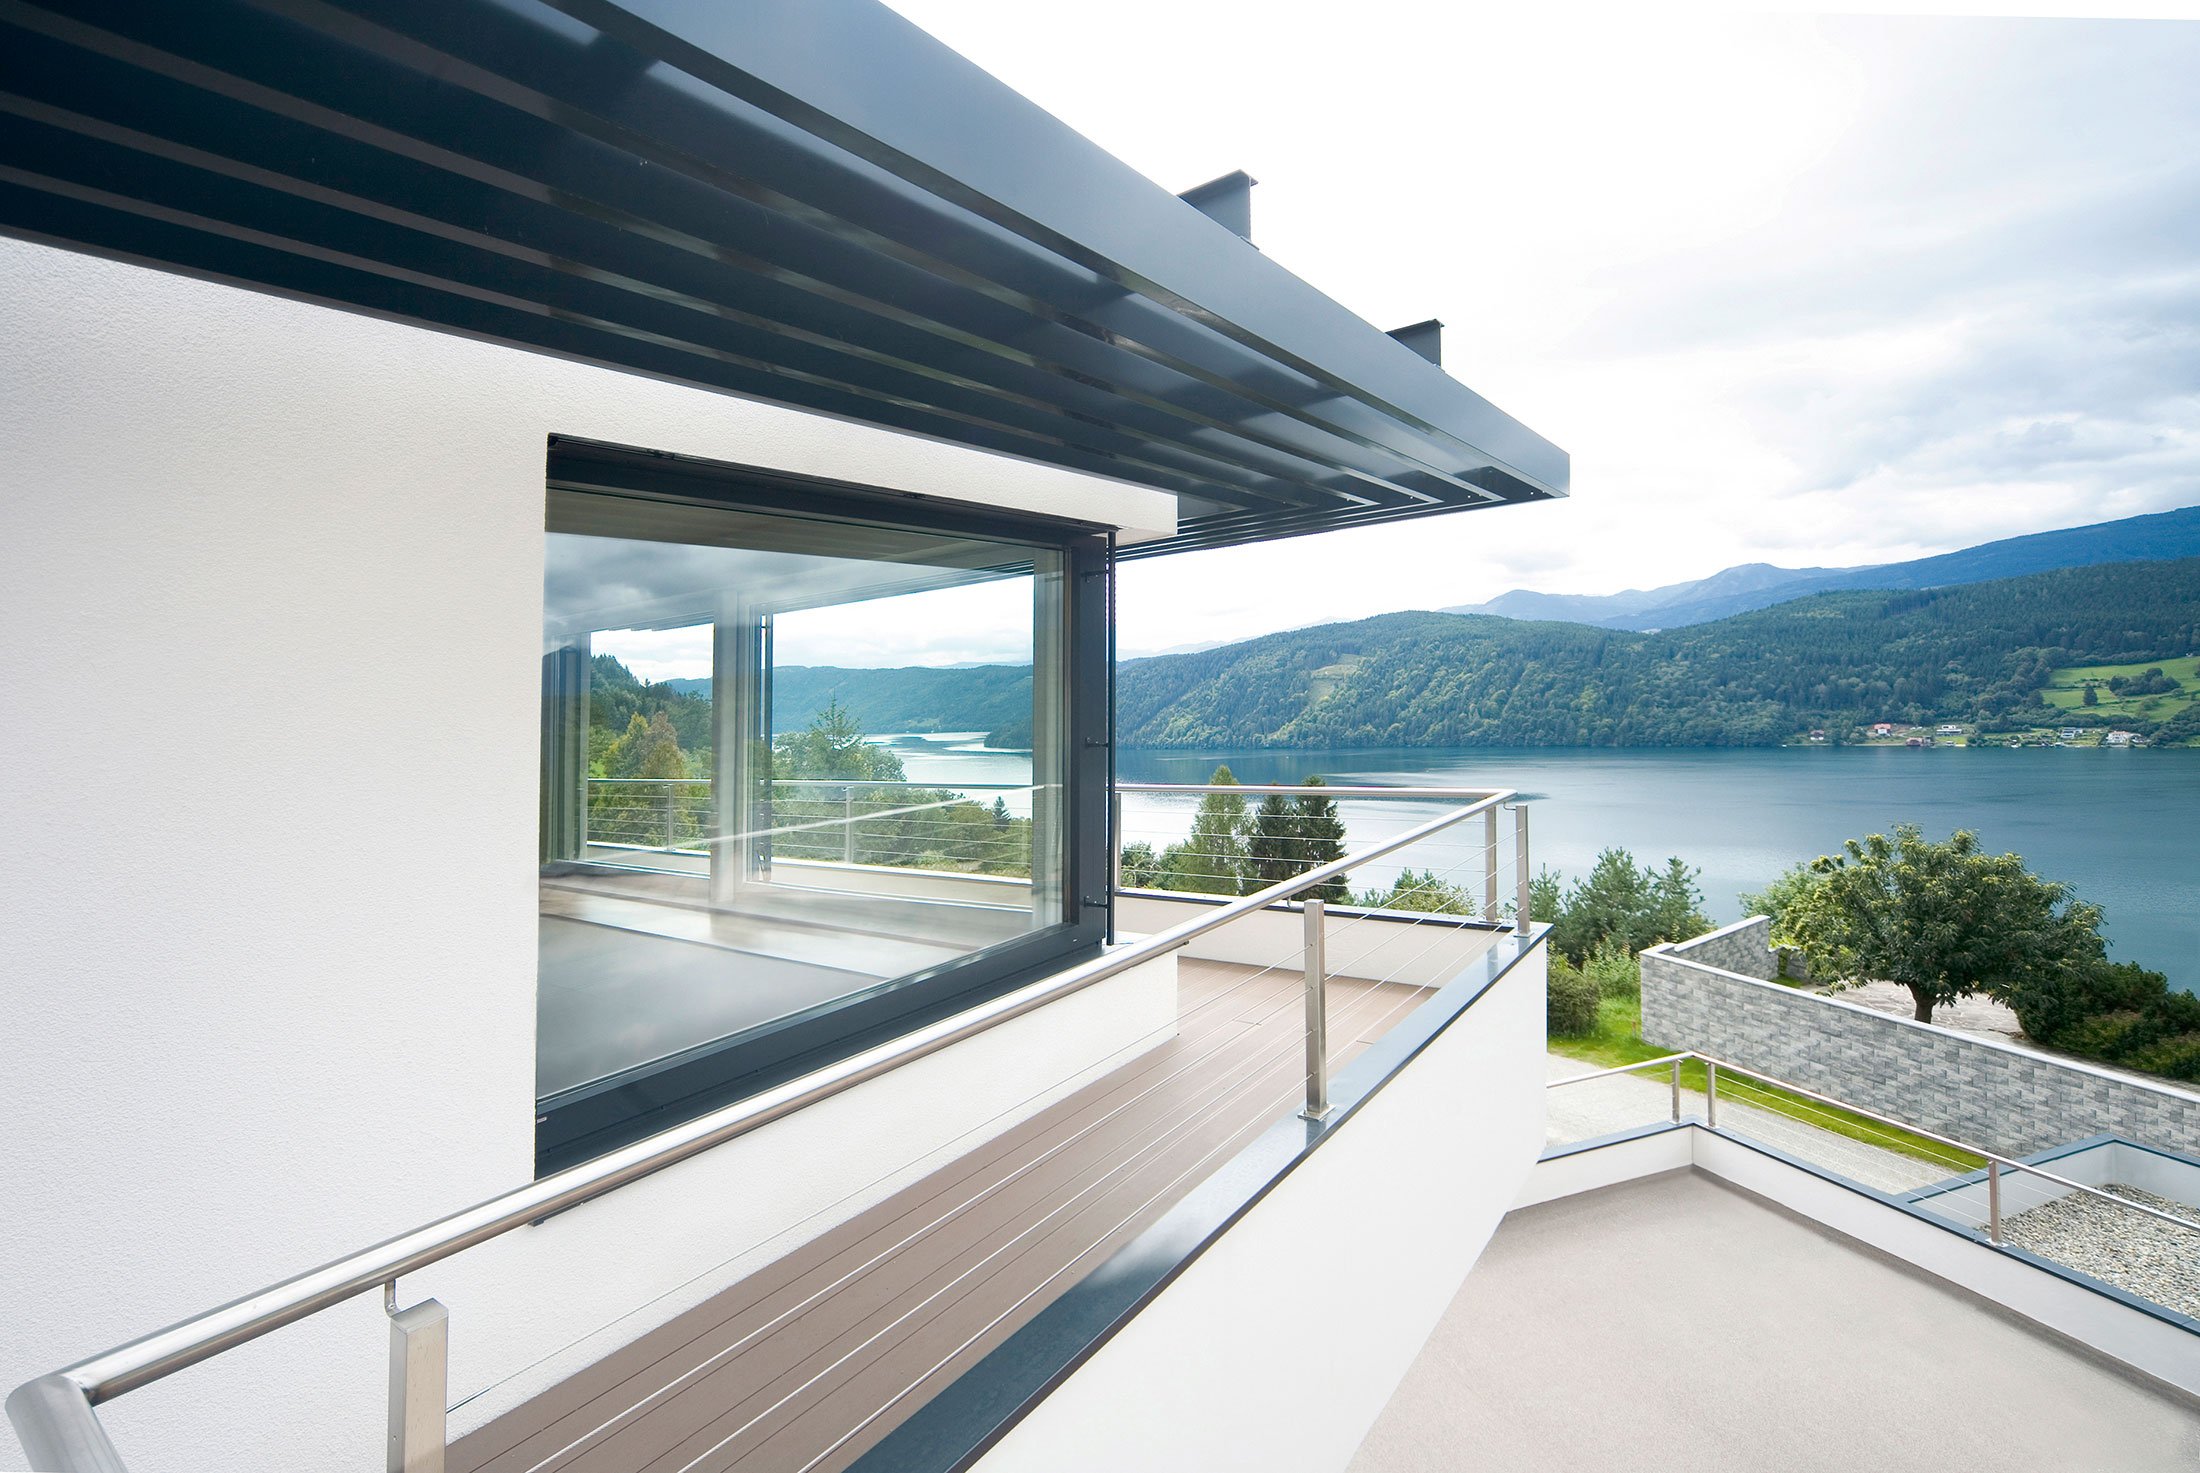 Internorm composite windows high performance energy for Low energy windows